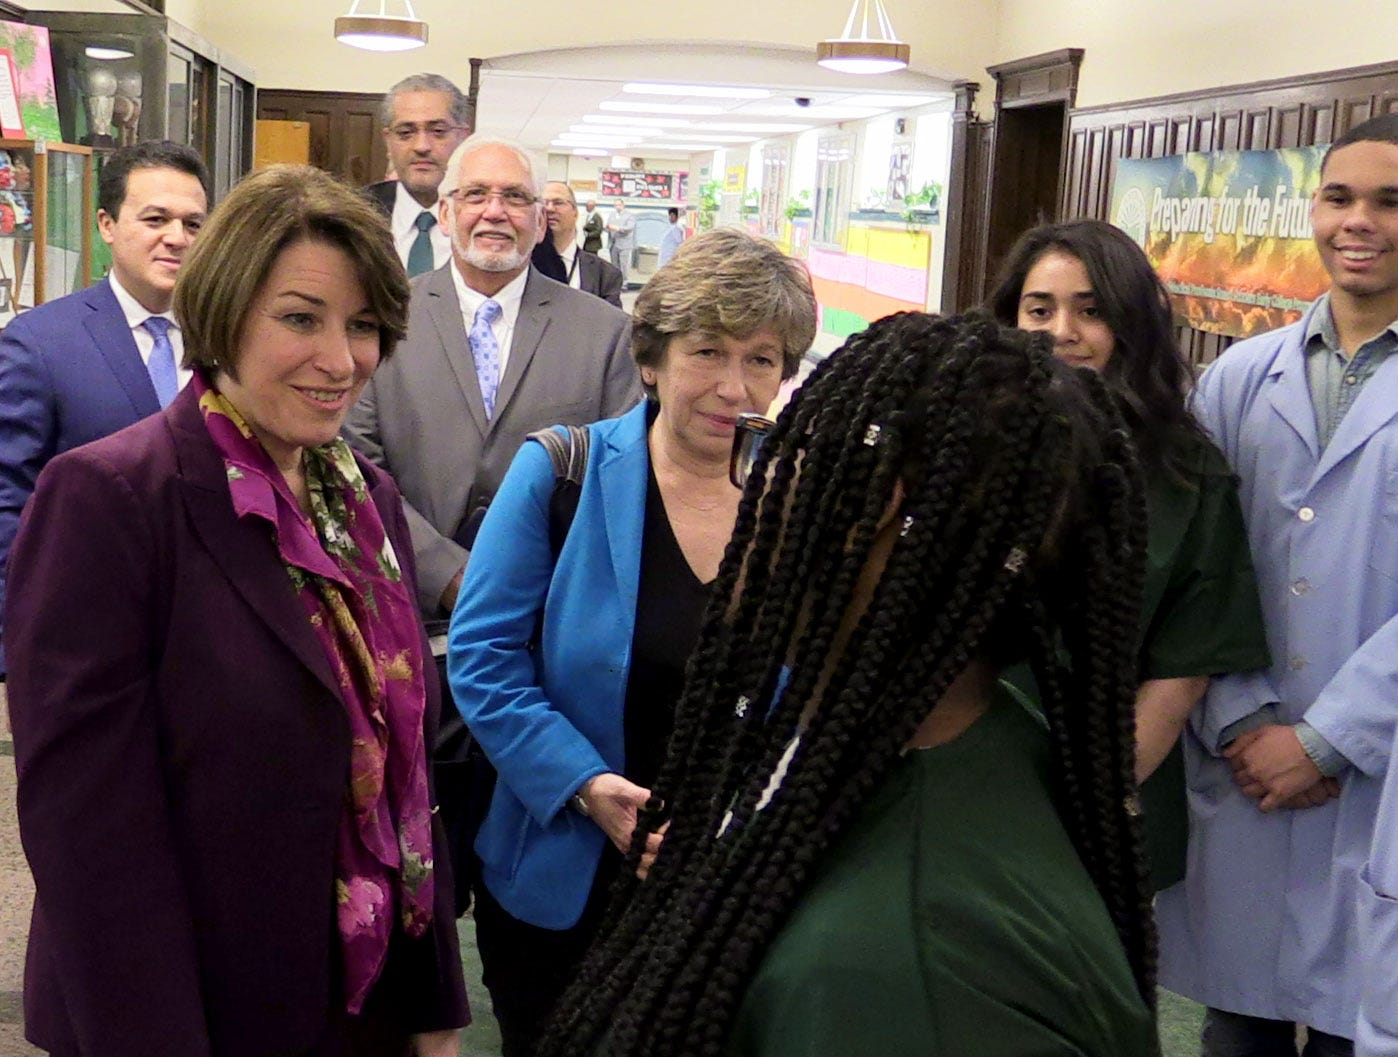 U.S. Sen. Amy Klobuchar (D-Minn.), a Democratic presidential candidate, along with Randi Weingarten, the president of the American Federation of Teachers, greets students in the vestibule of Gorton High School in Yonkers, May 10, 2019. She was there for a tour of the school.